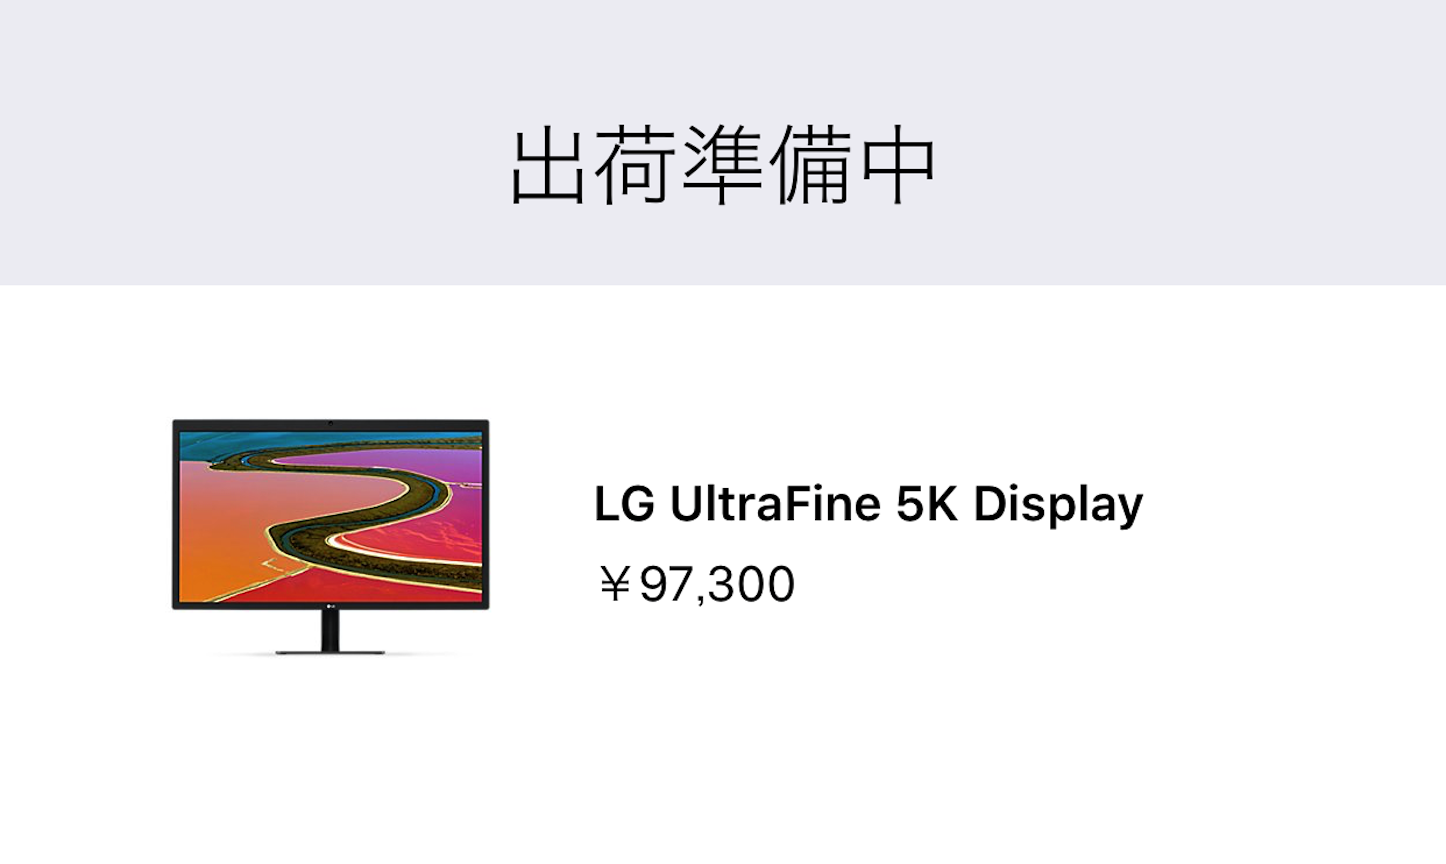 LG UltraFine 5K Display Coming Soon top